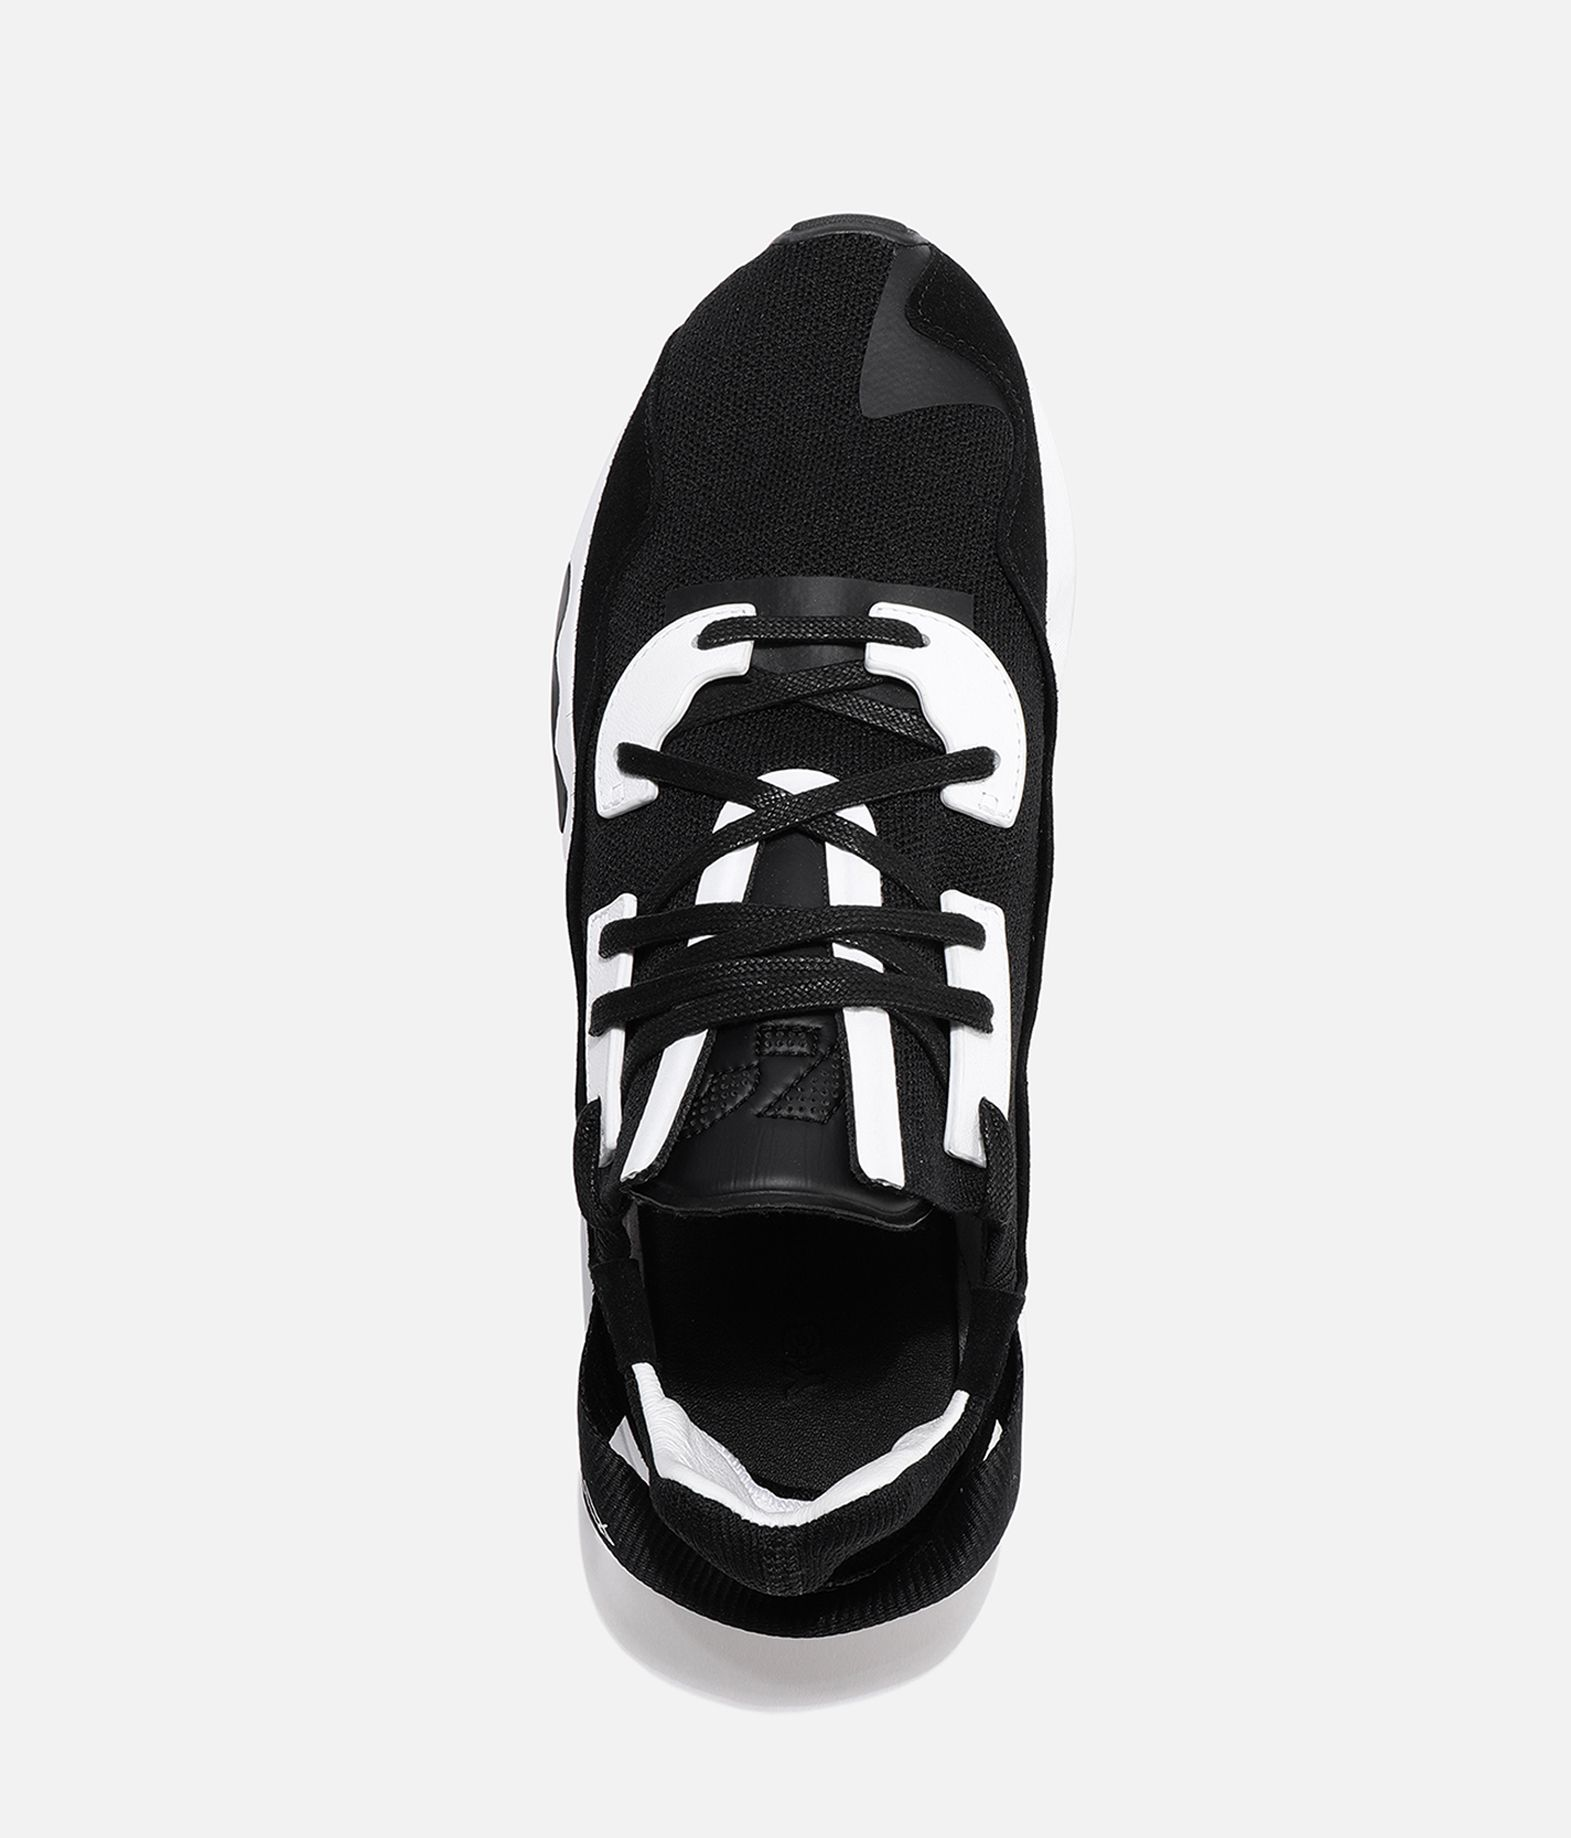 Y-3 Y-3 ZX Torsion Sneakers E c